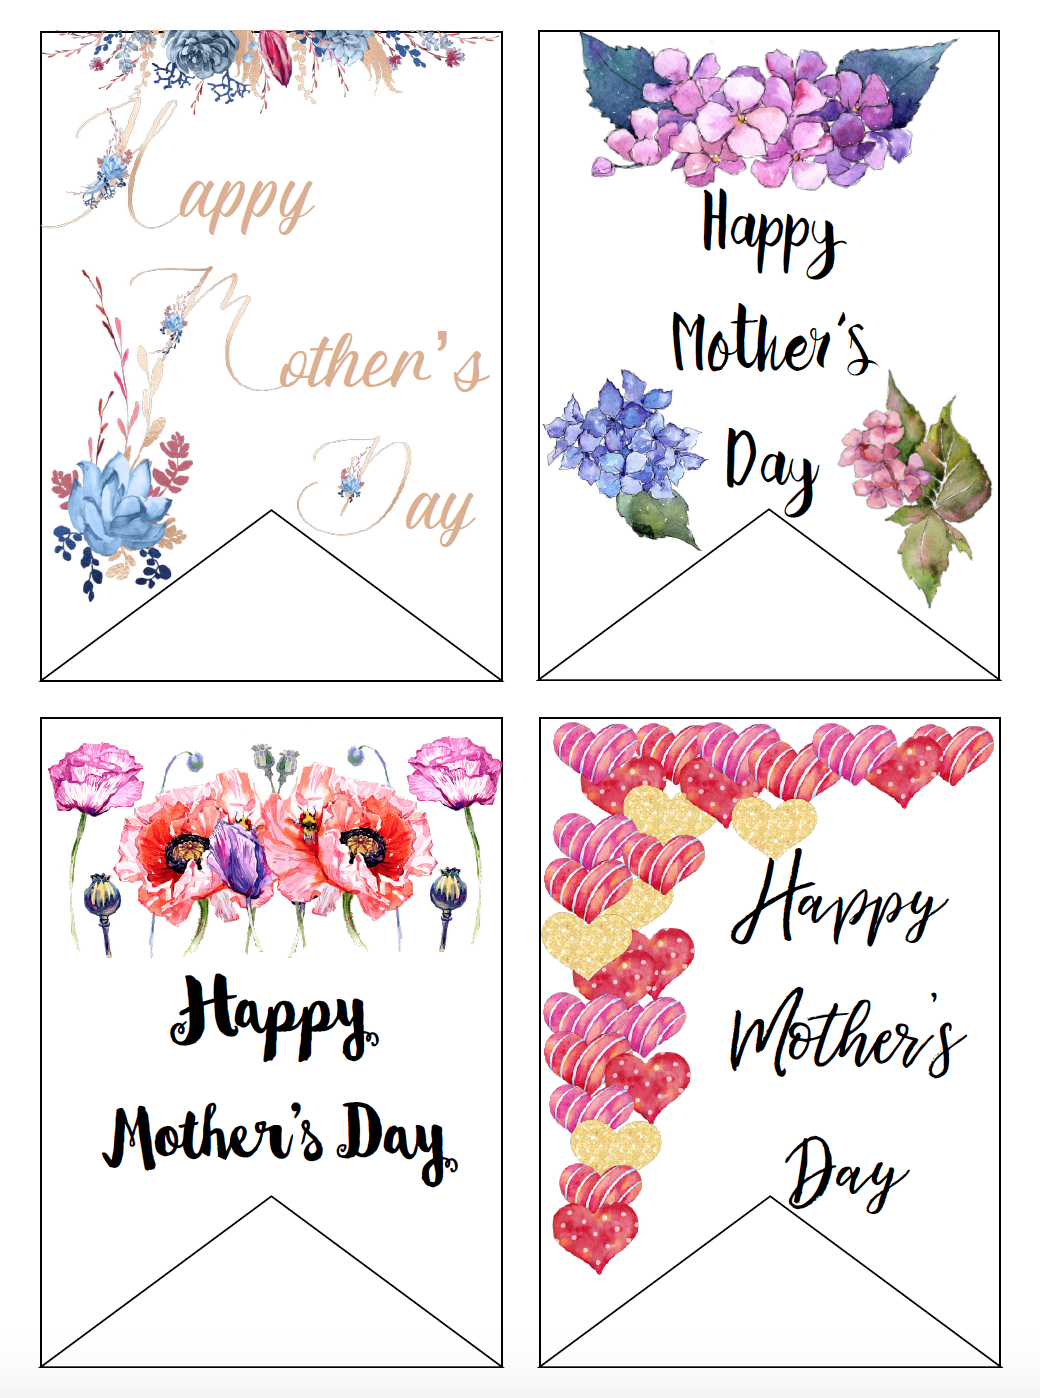 Gift Tags. Free Printable Mother's Day Cards and Gift Tags. 4 different designs. Give a beautiful card to mom. Comes with matching gift tag.